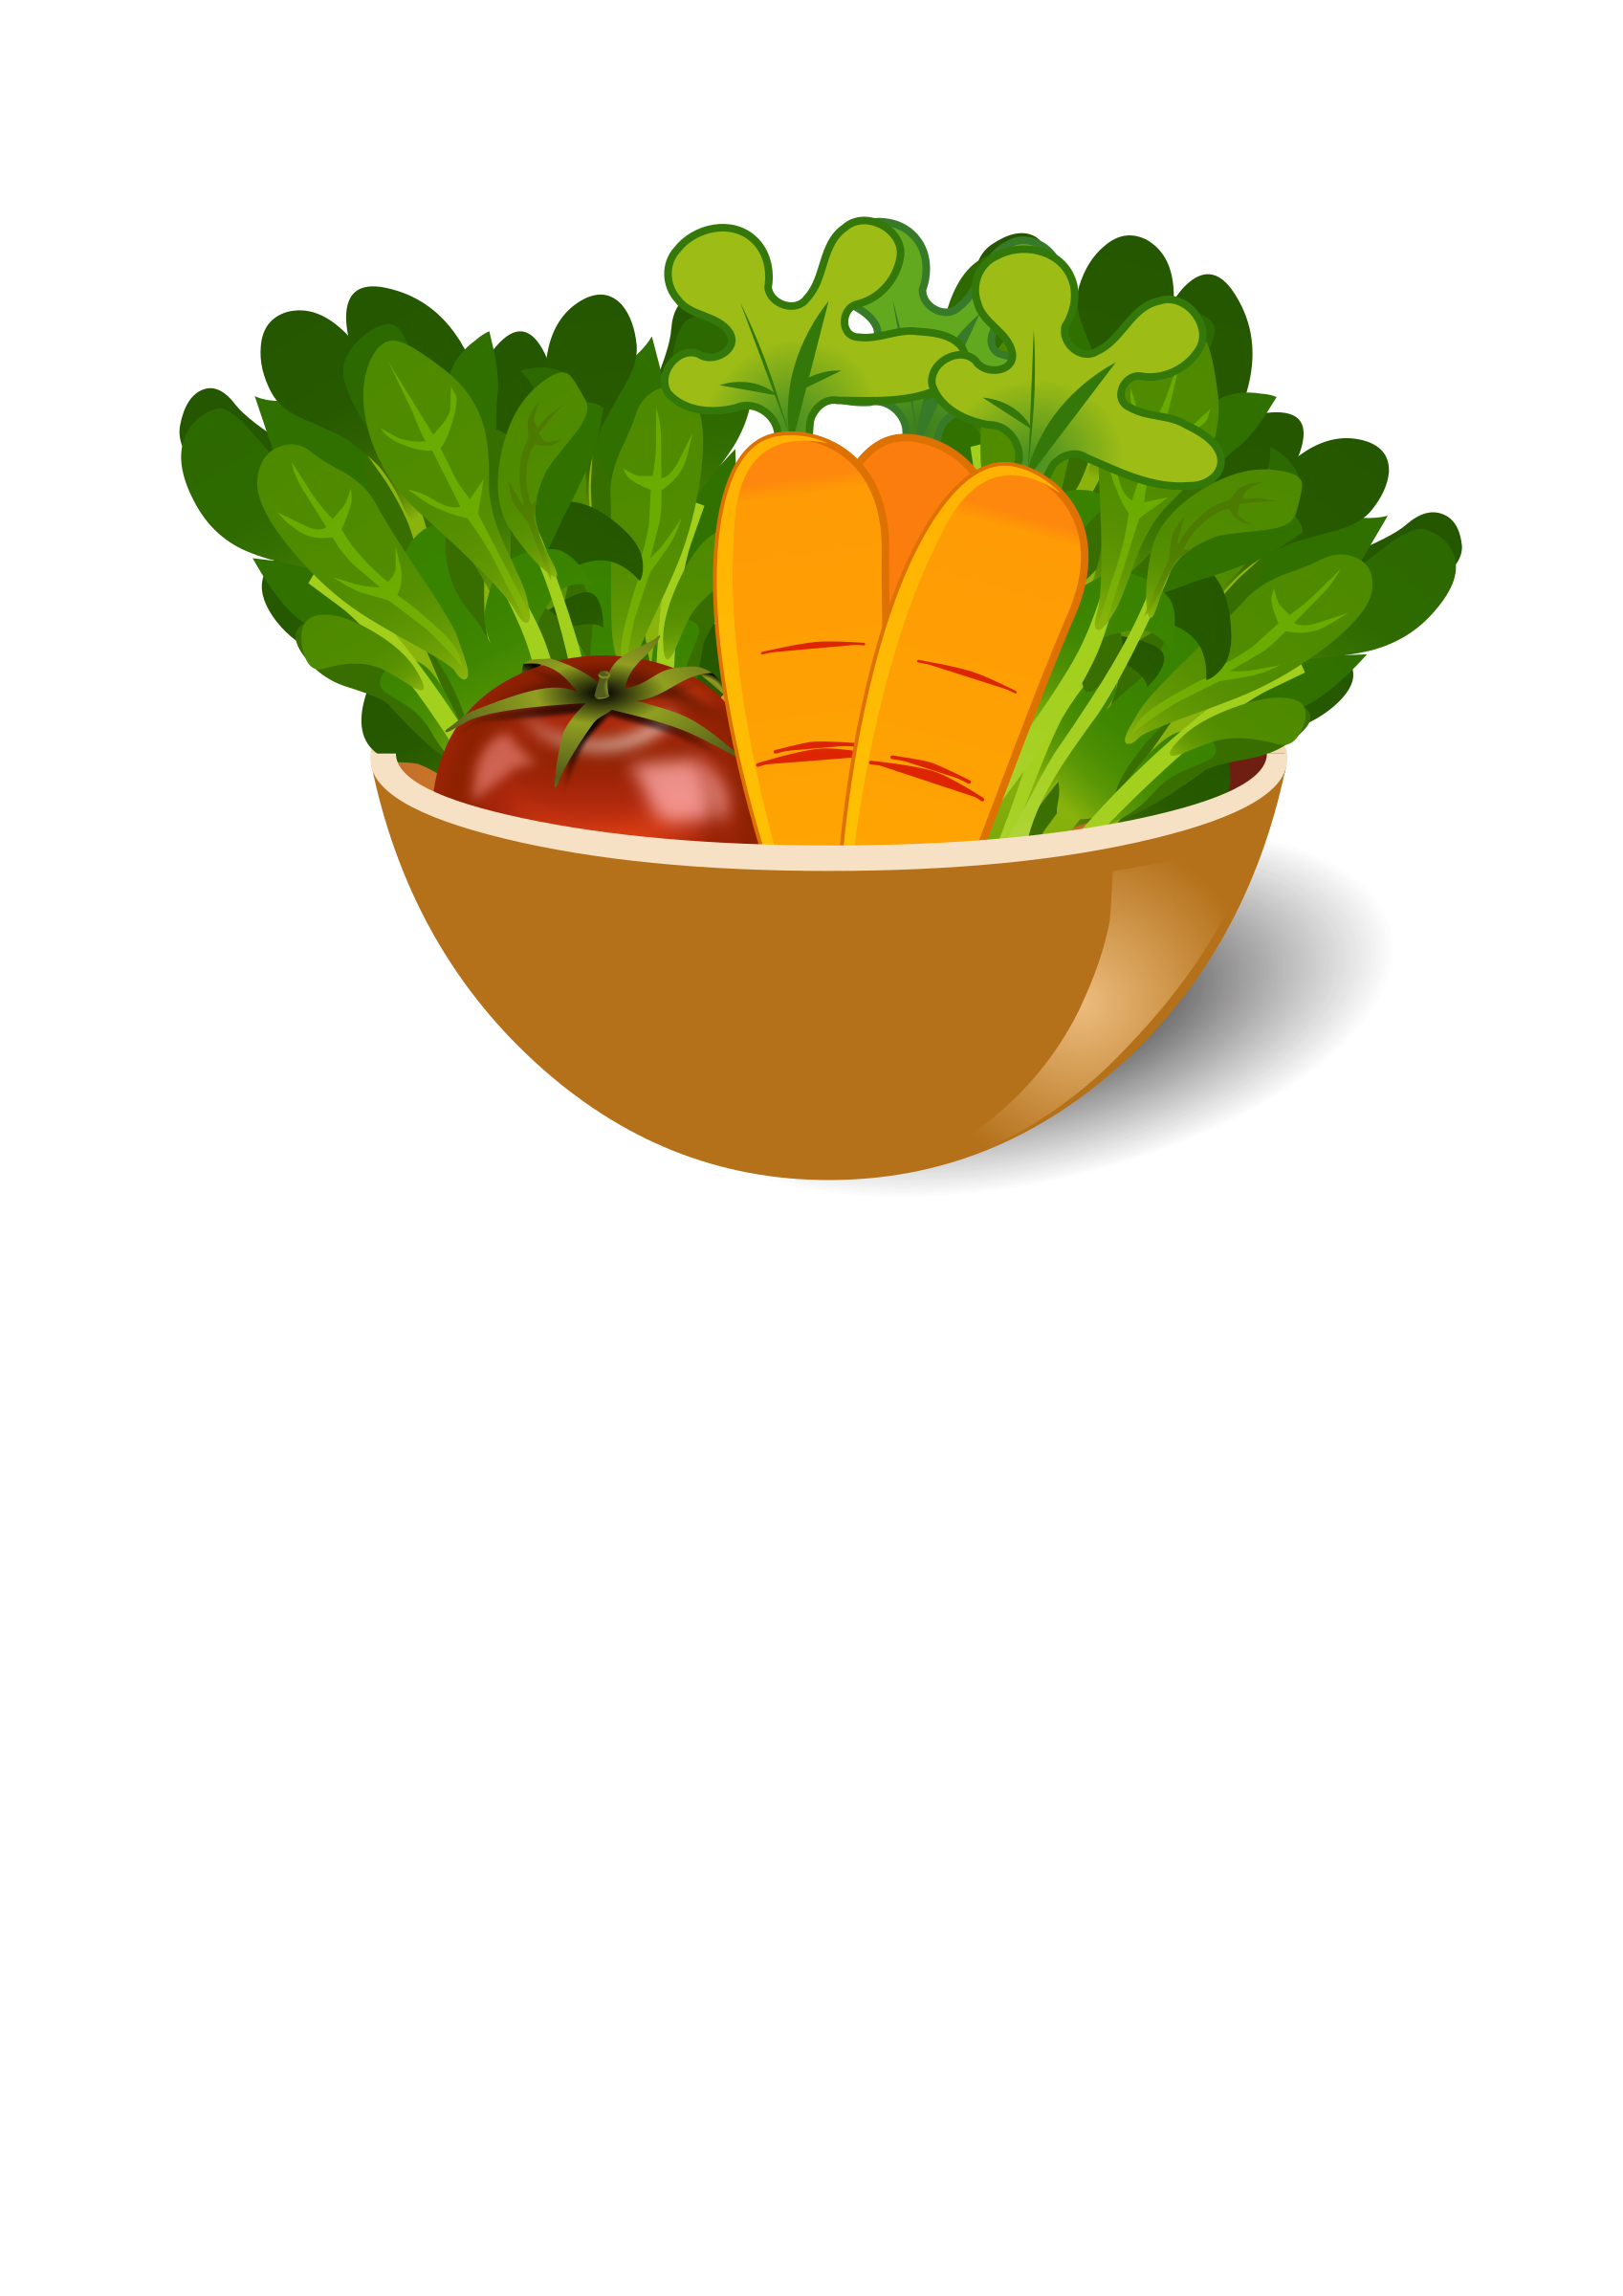 Carrots png bowl. Carrot jpg transparent